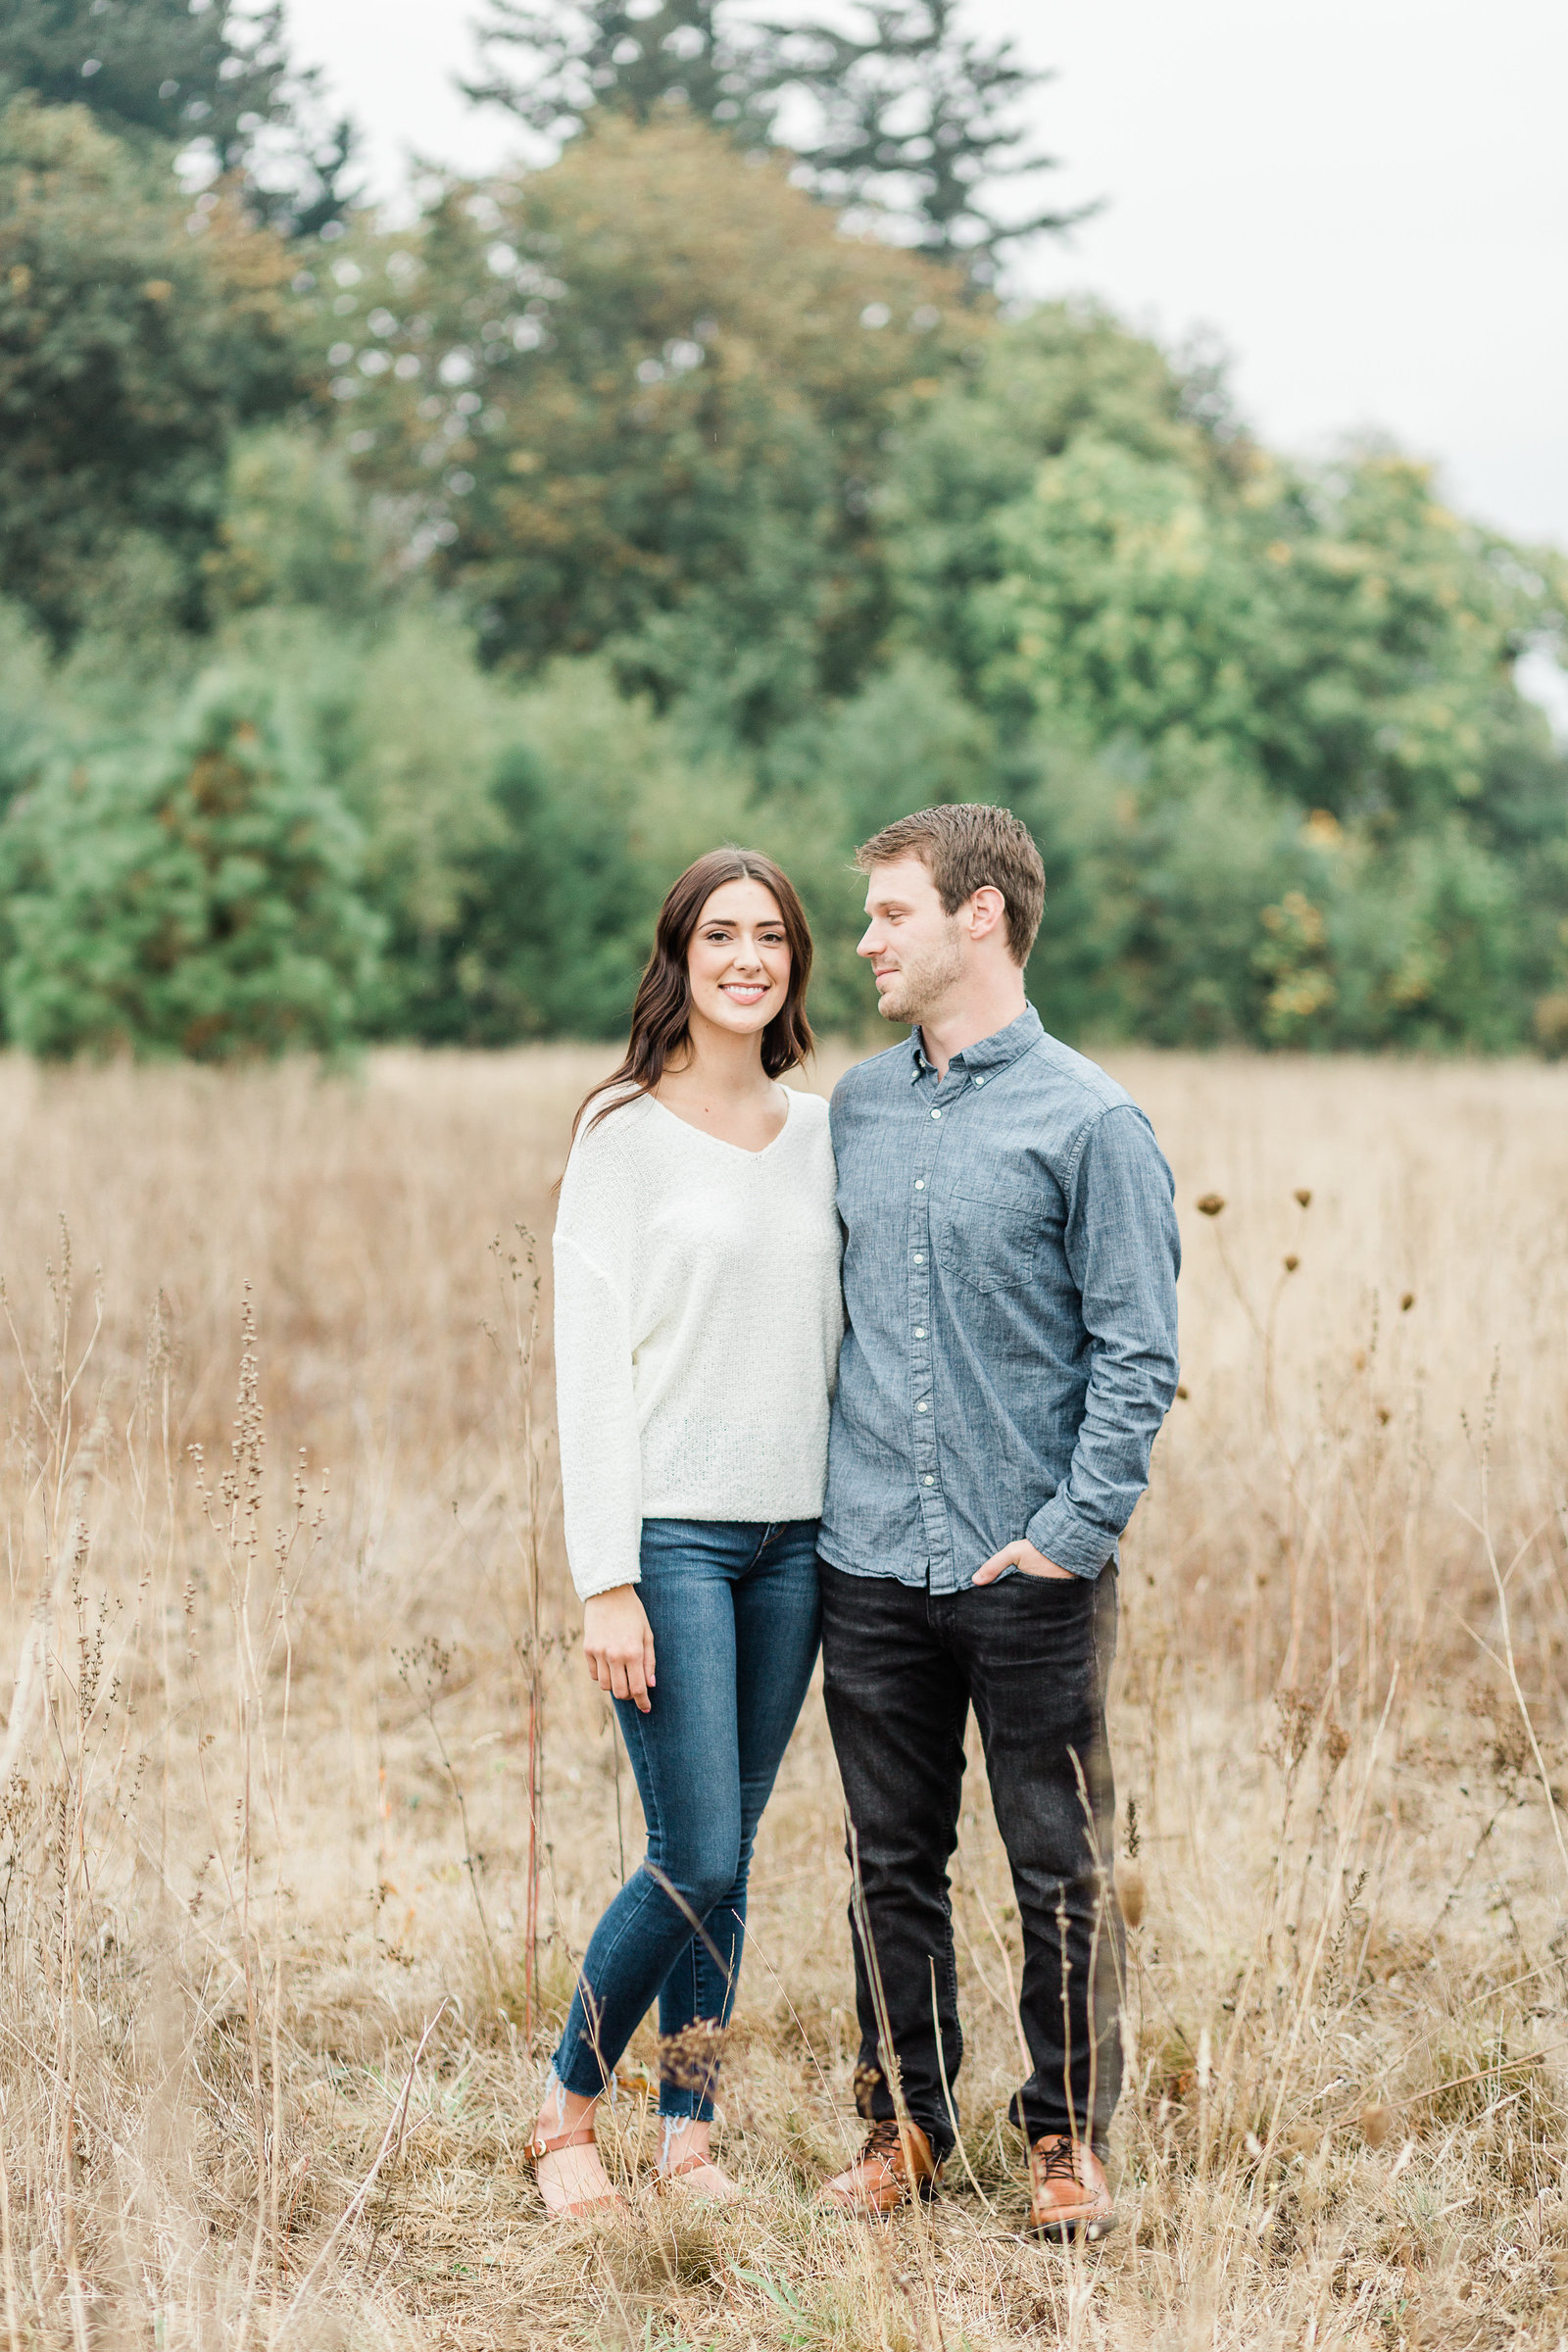 Taylor-TJ-Engagements-Georgia-Ruth-Photography-11